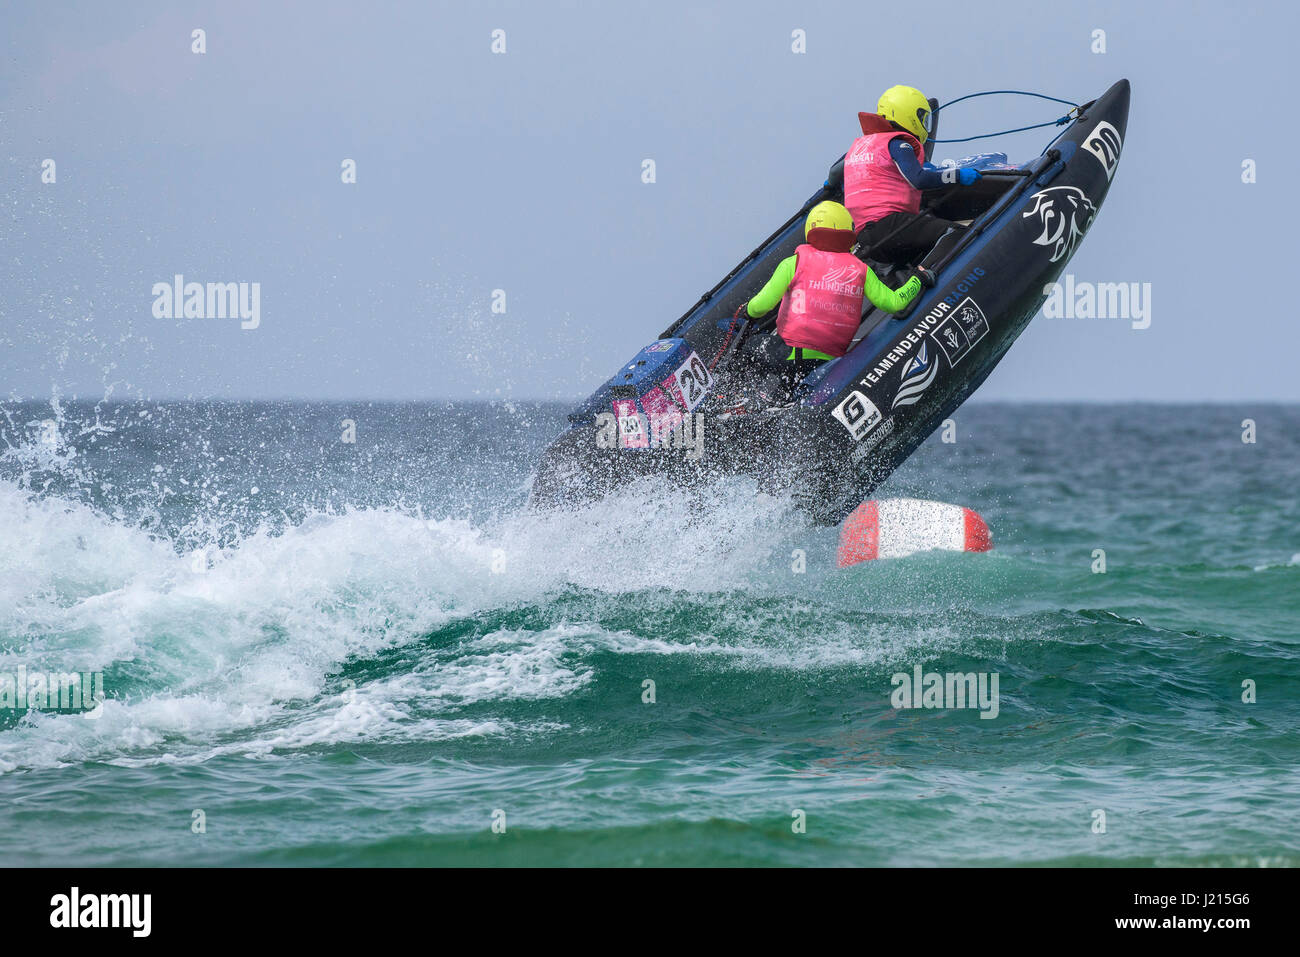 Thundercat Racing Race Sea Spray Spectacular Action Watersport Inflatable boat racing Fistral Beach Newquay Cornwall - Stock Image